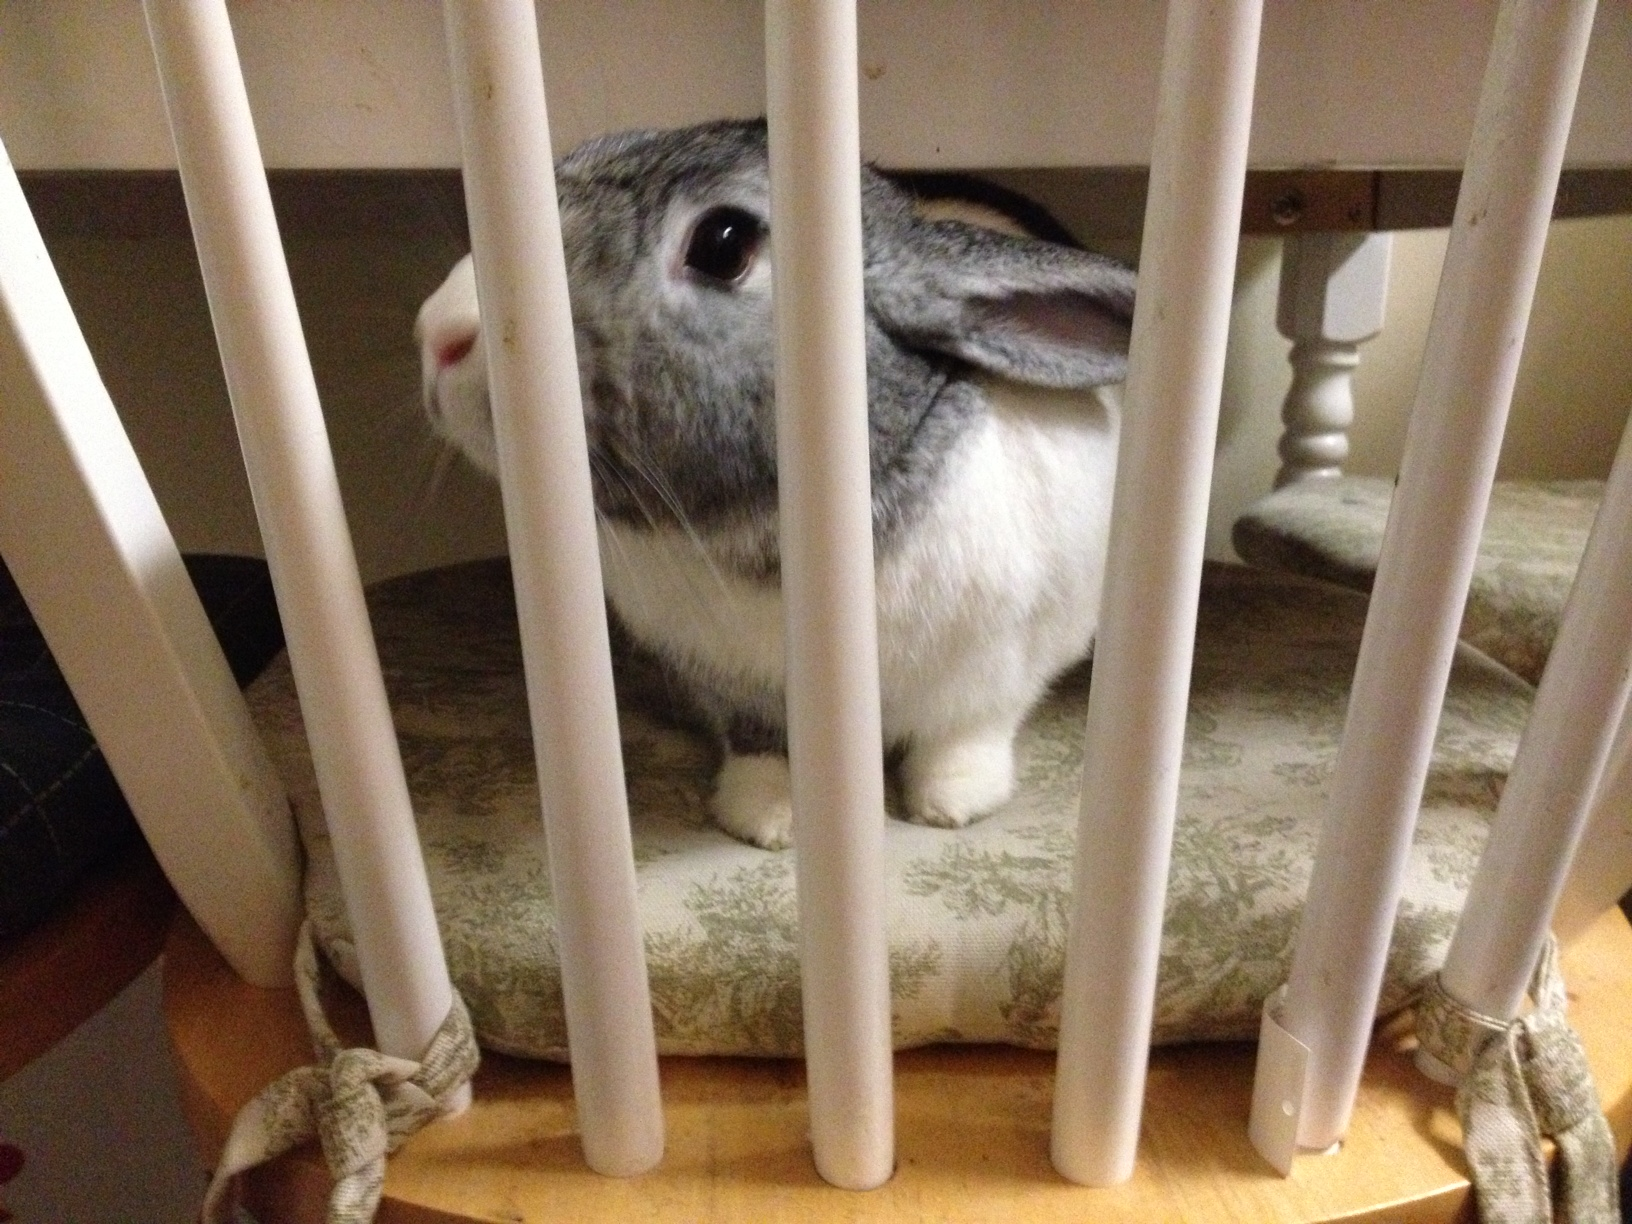 Jailed Bunny Is Sentenced to a Lifetime of Cuddles and Treats